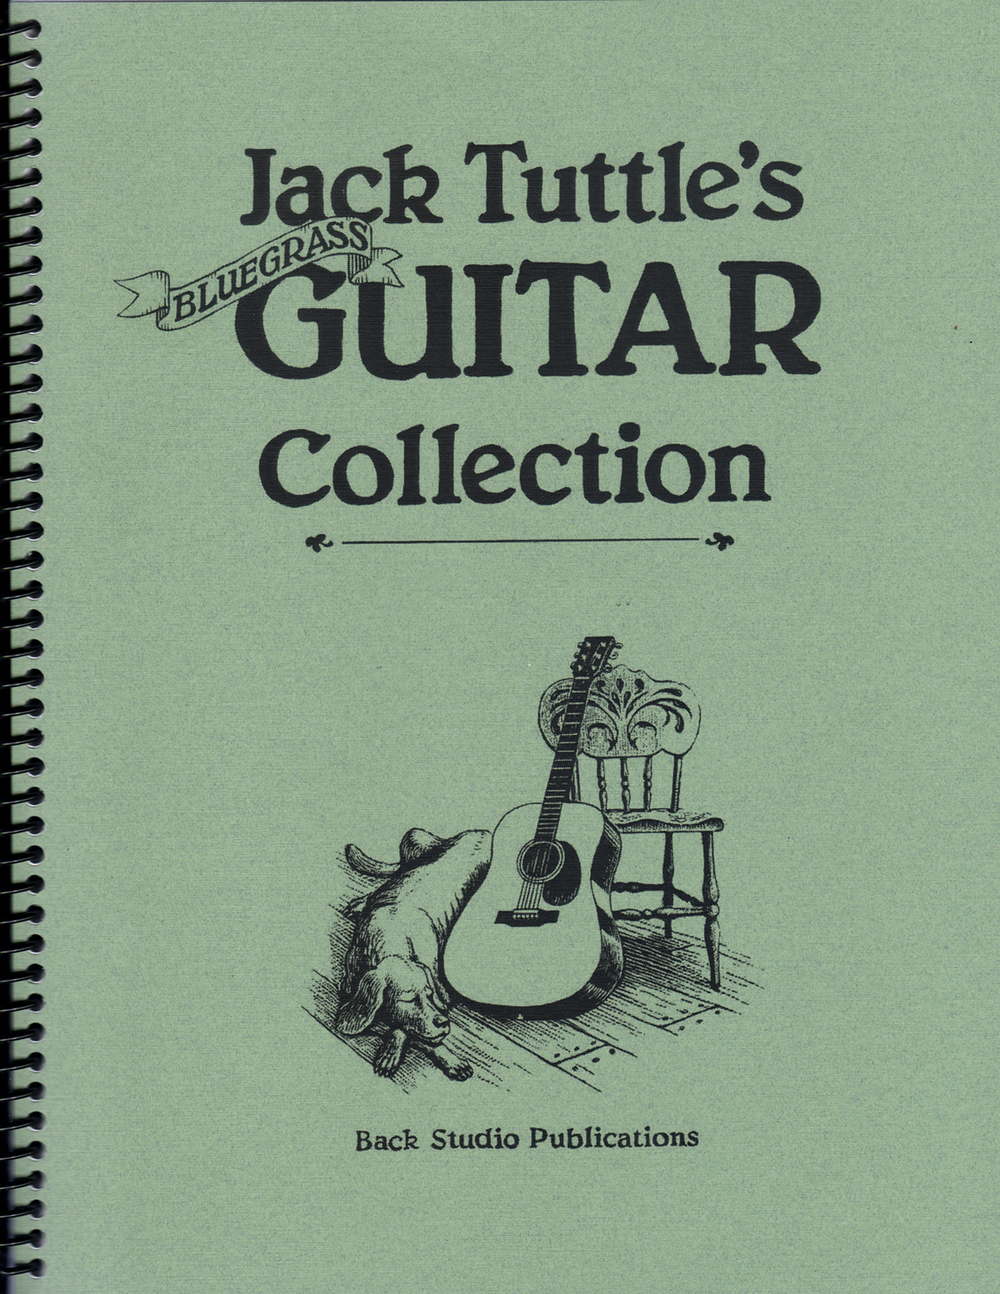 Jack Tuttle's Bluegrass Guitar Collection, Vol. 2